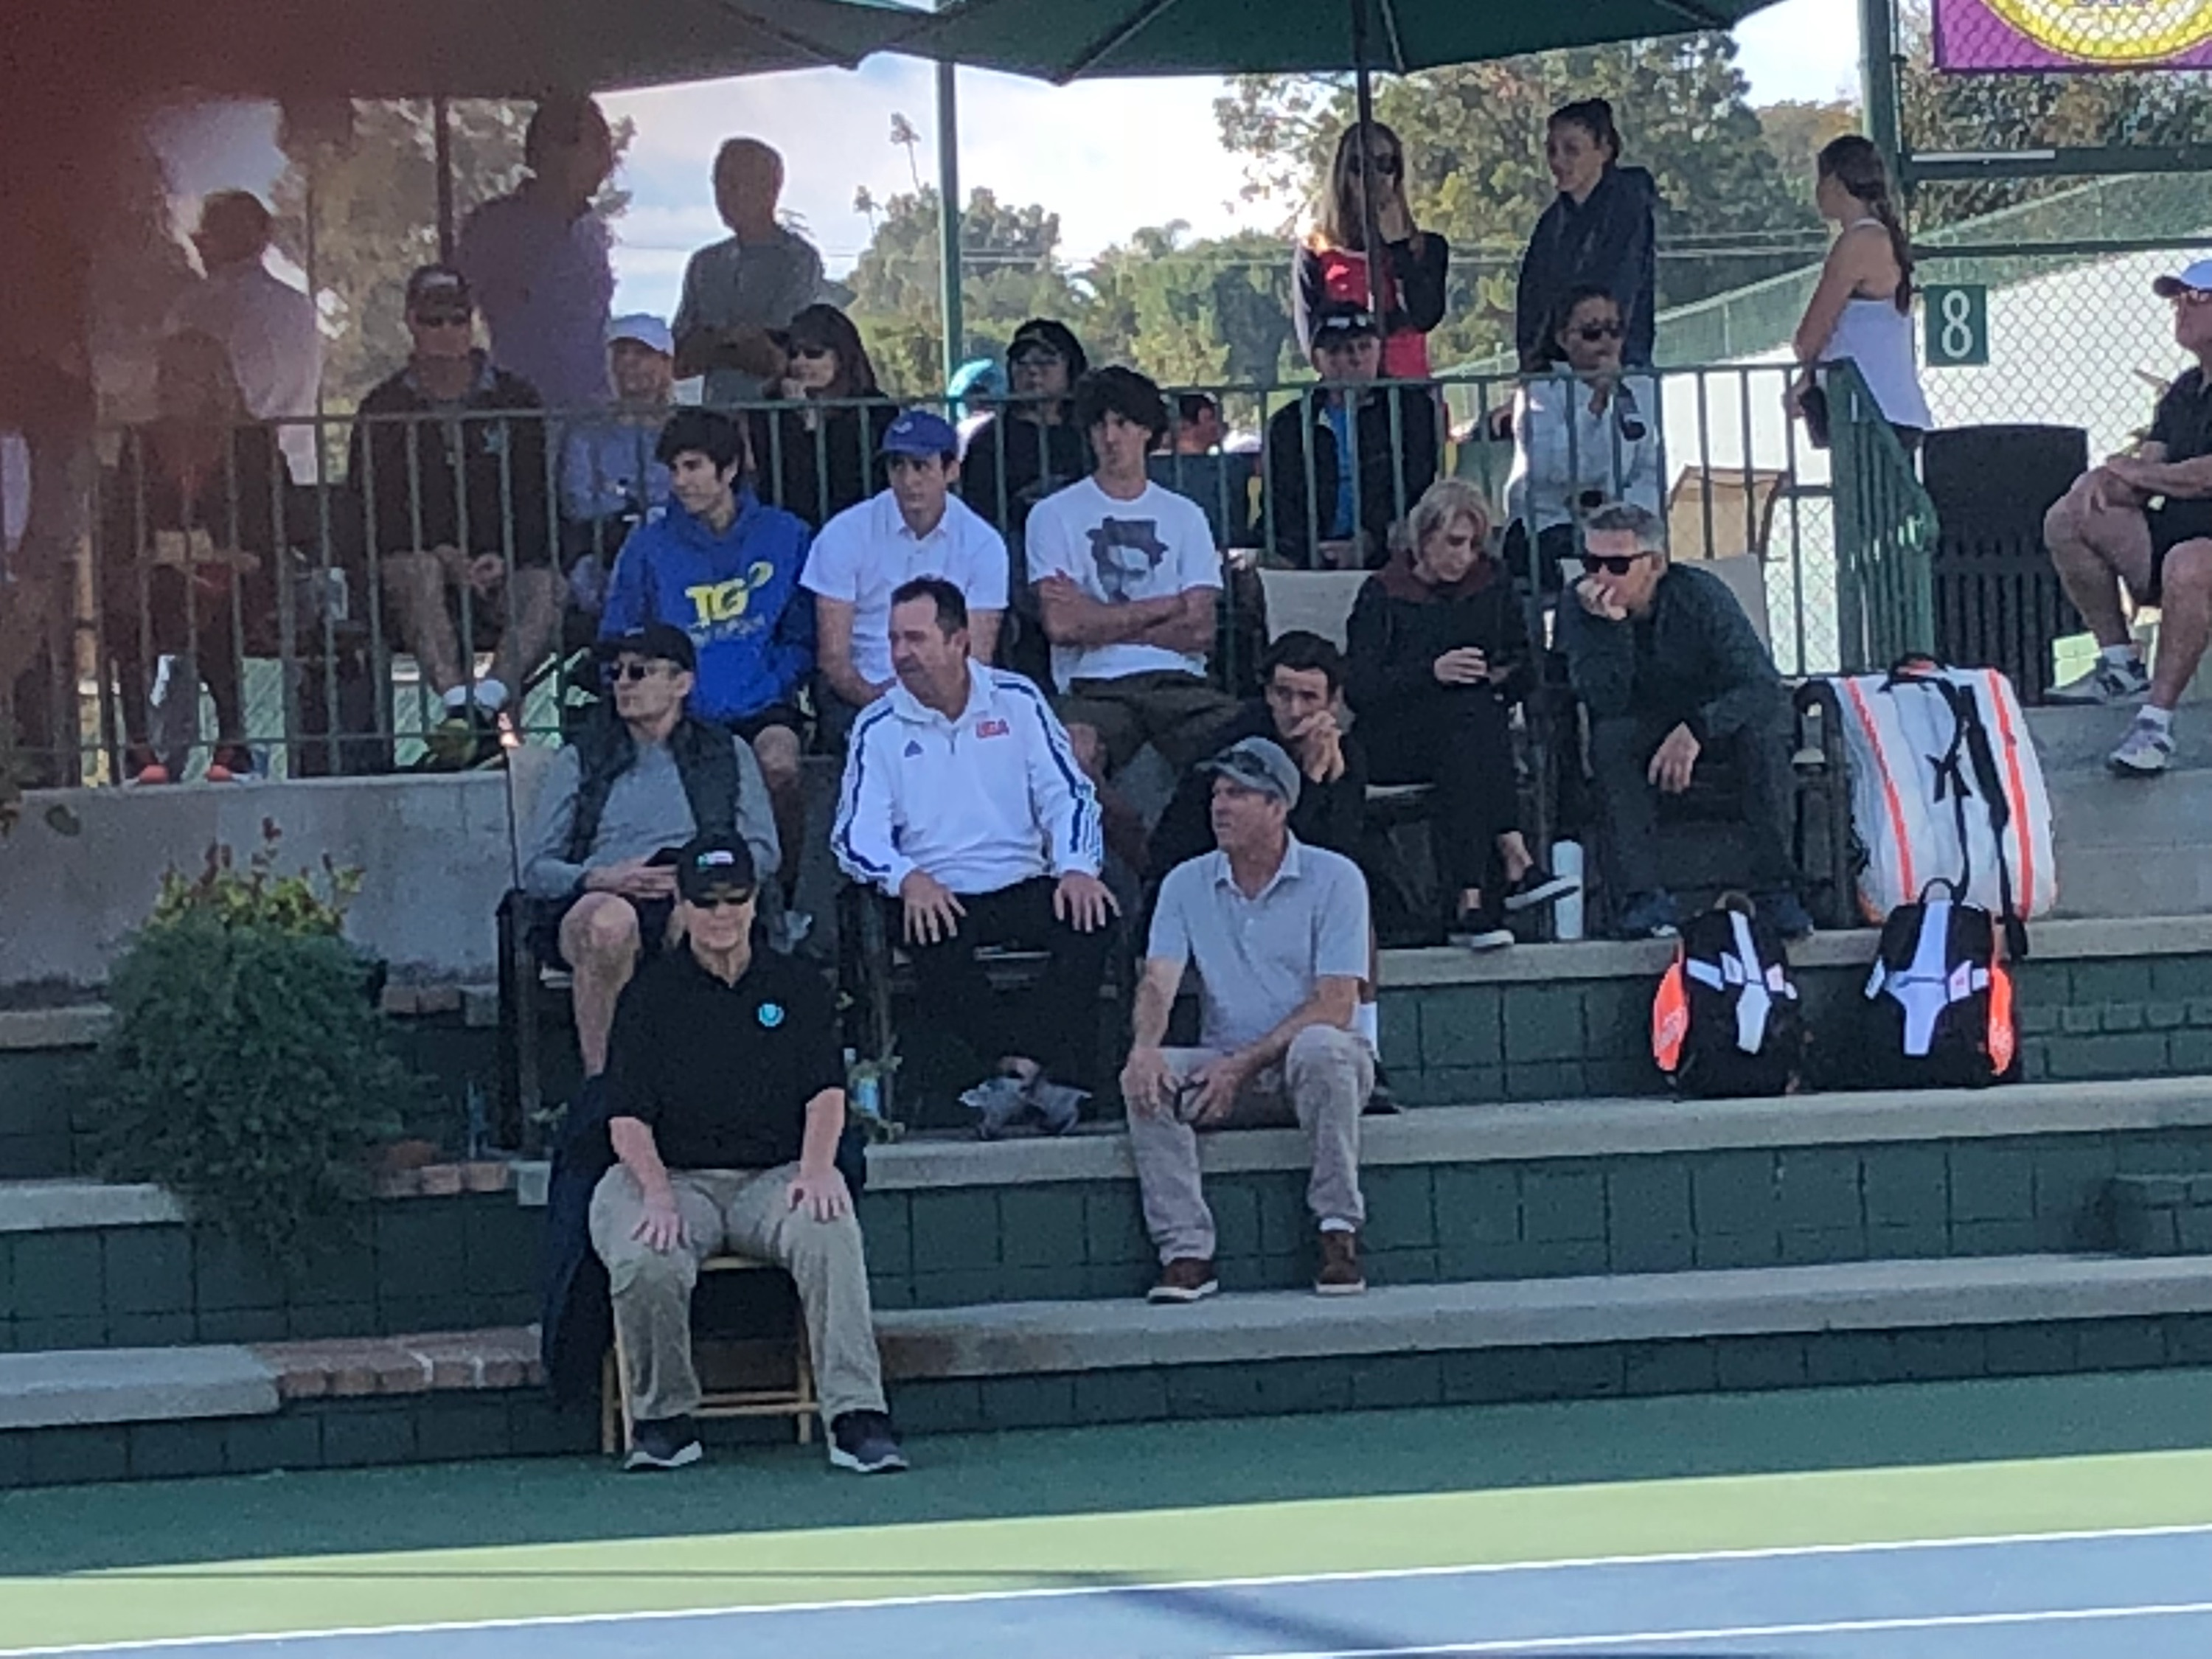 Tennis Big Crowds And Facebook Live Viewers From The Utr